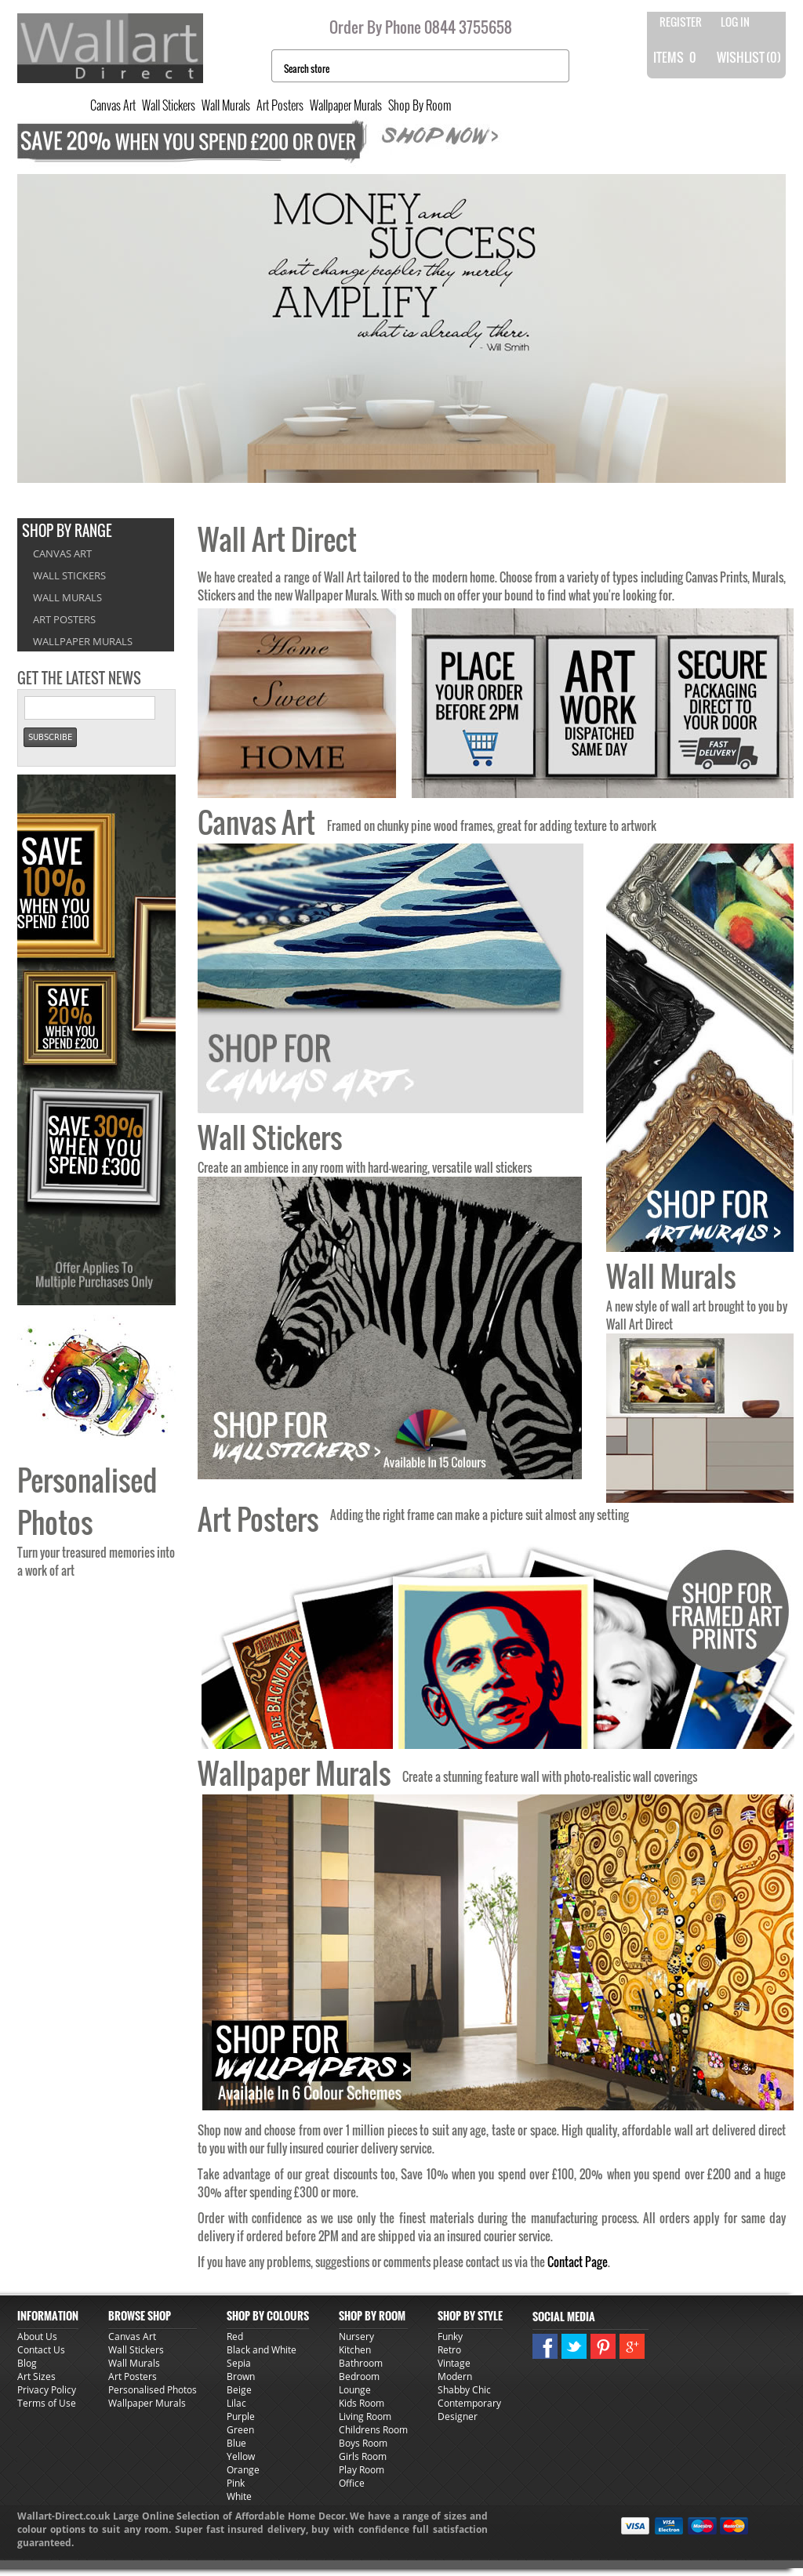 Wall Art Direct S Competitors Revenue Number Of Employees Funding Acquisitions News Owler Company Profile